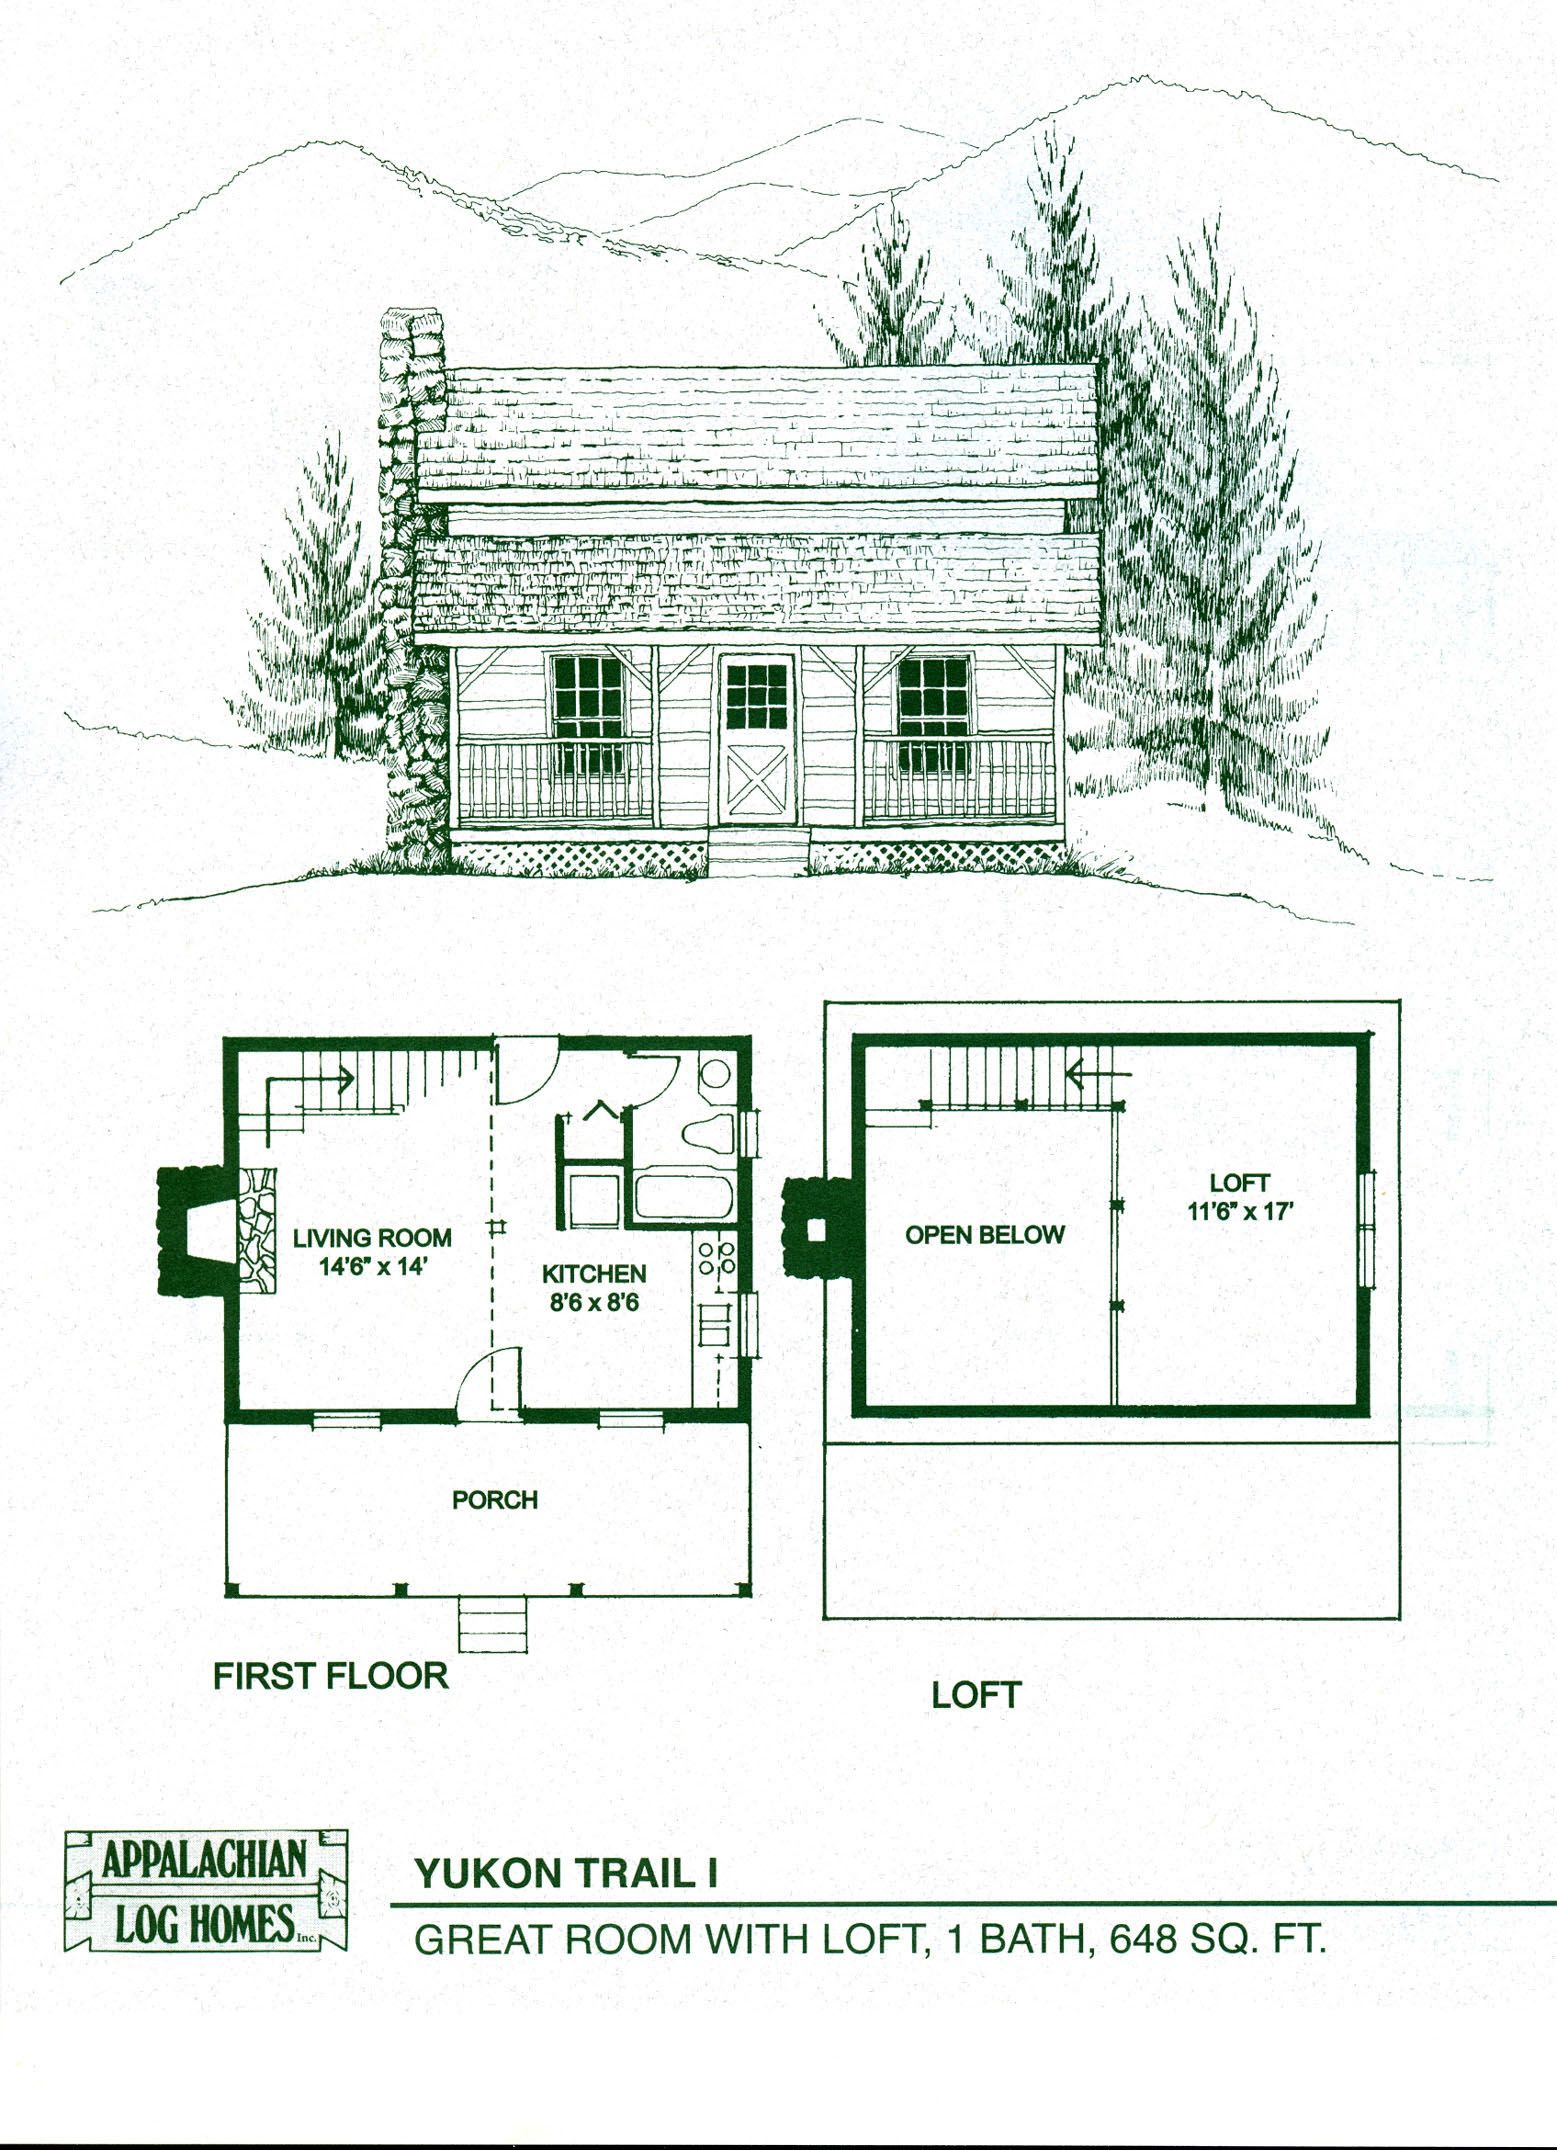 log home floor plans log cabin kits appalachian log homes - Small Cottage House Plans 2